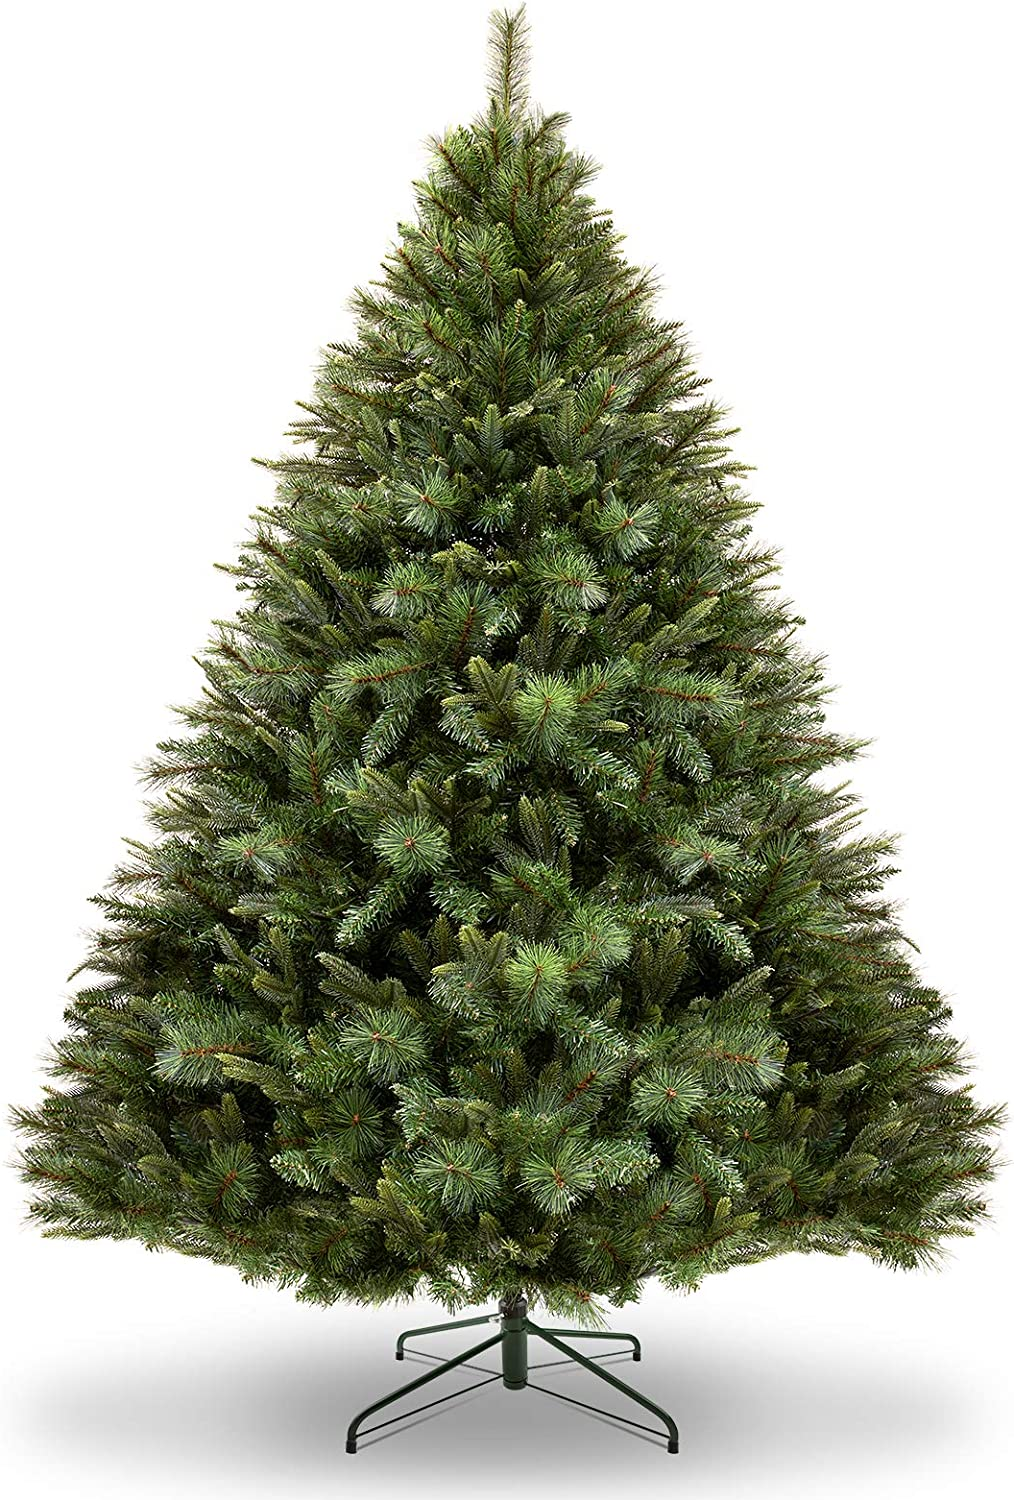 WBHome 7 Feet Premium Spruce Christmas Hinged shipfree Max 79% OFF 1 Tree Artificial